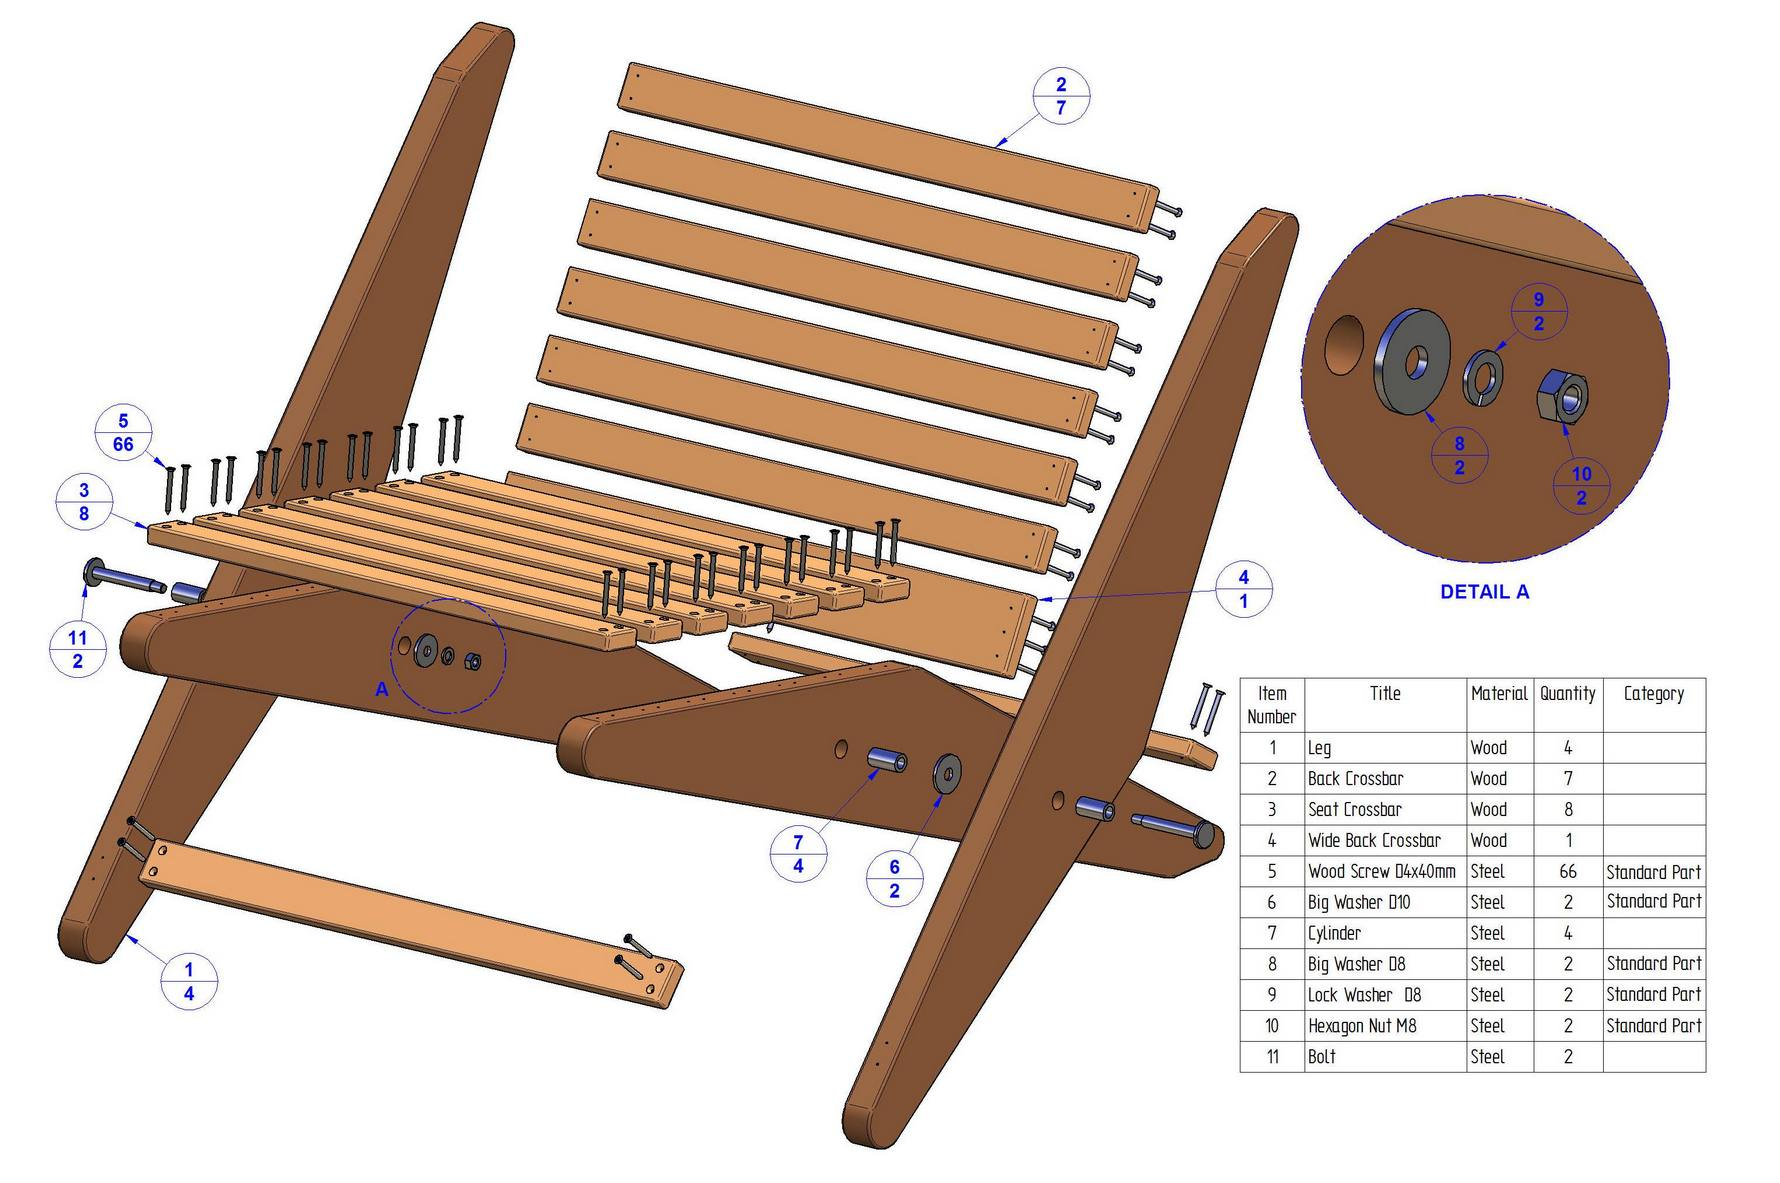 Share Outdoor Wood Furniture Plans Woodworking Plans Wood Design And Project